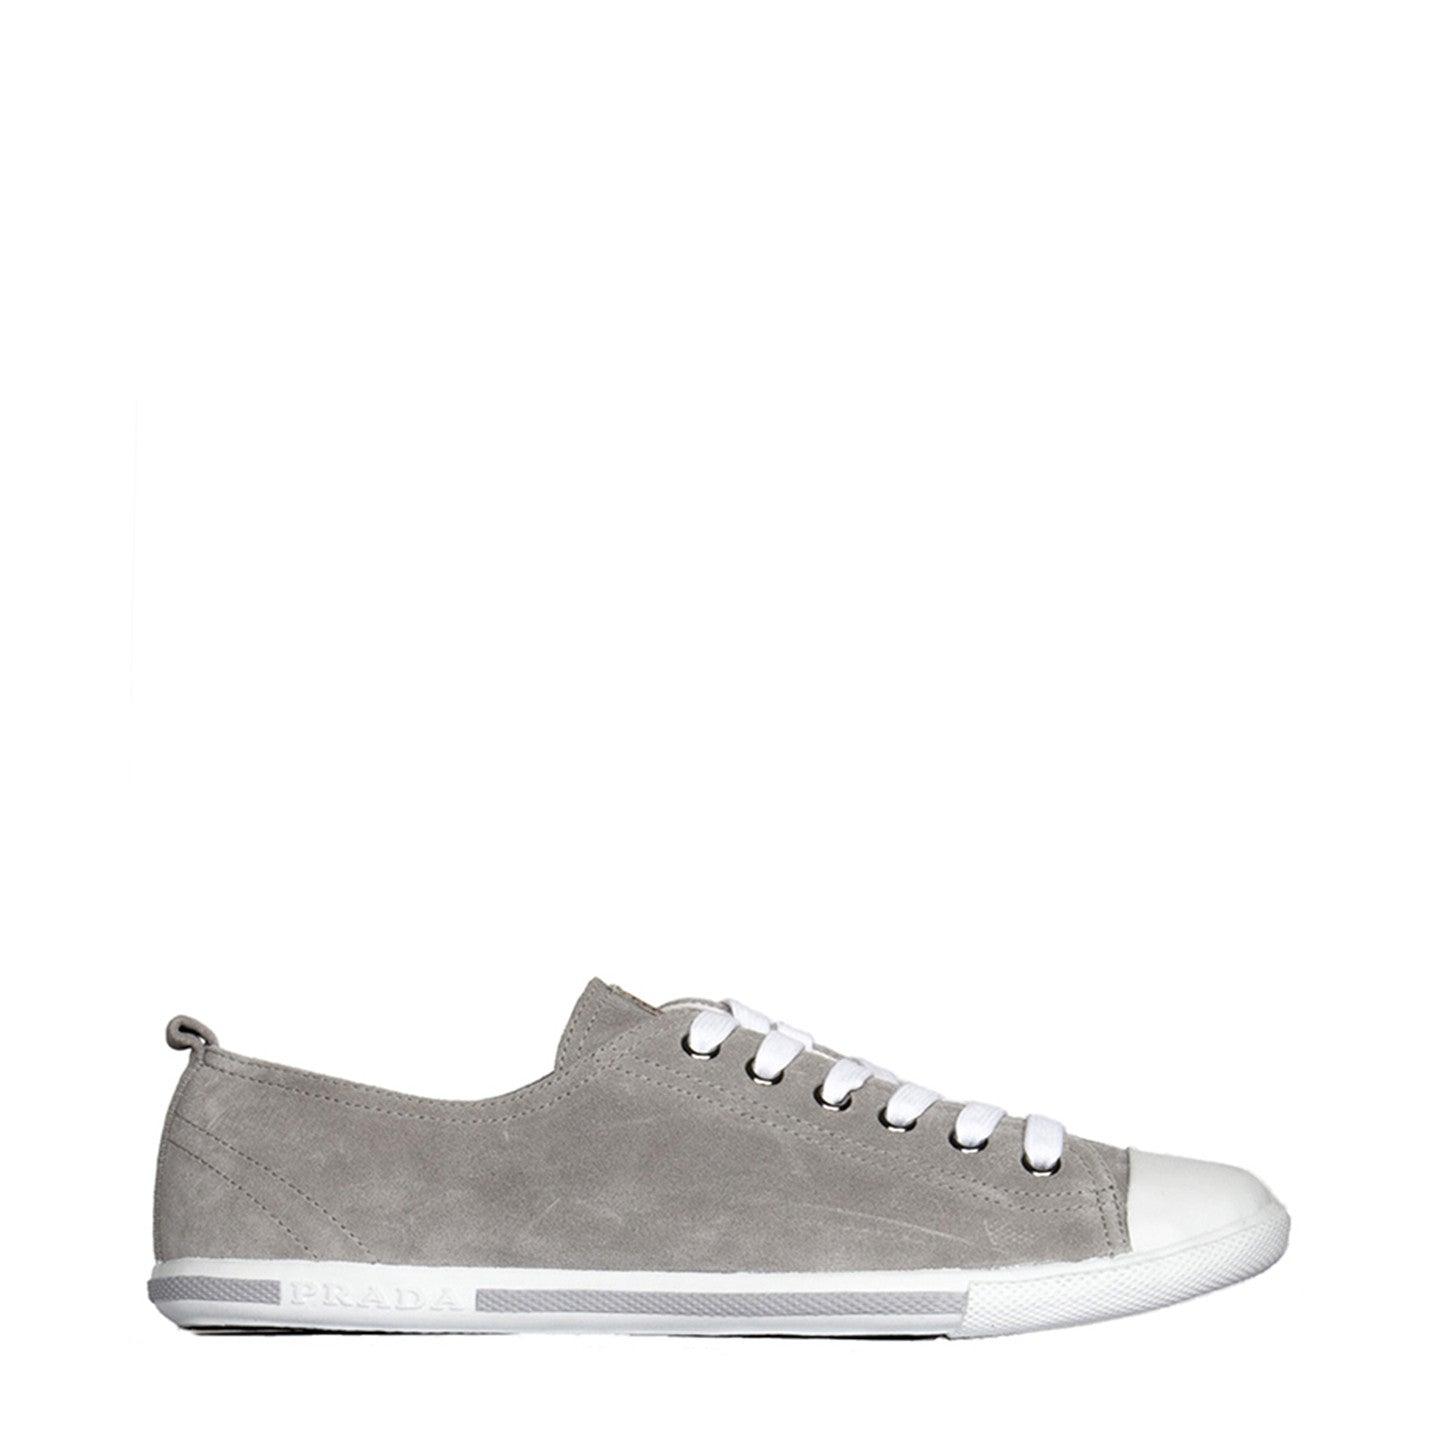 Find an authentic preowned Prada Grey Suede Sneakers, size 40 (Italian) at BunnyJack, where up to 50% of each sale price is donated to charity.